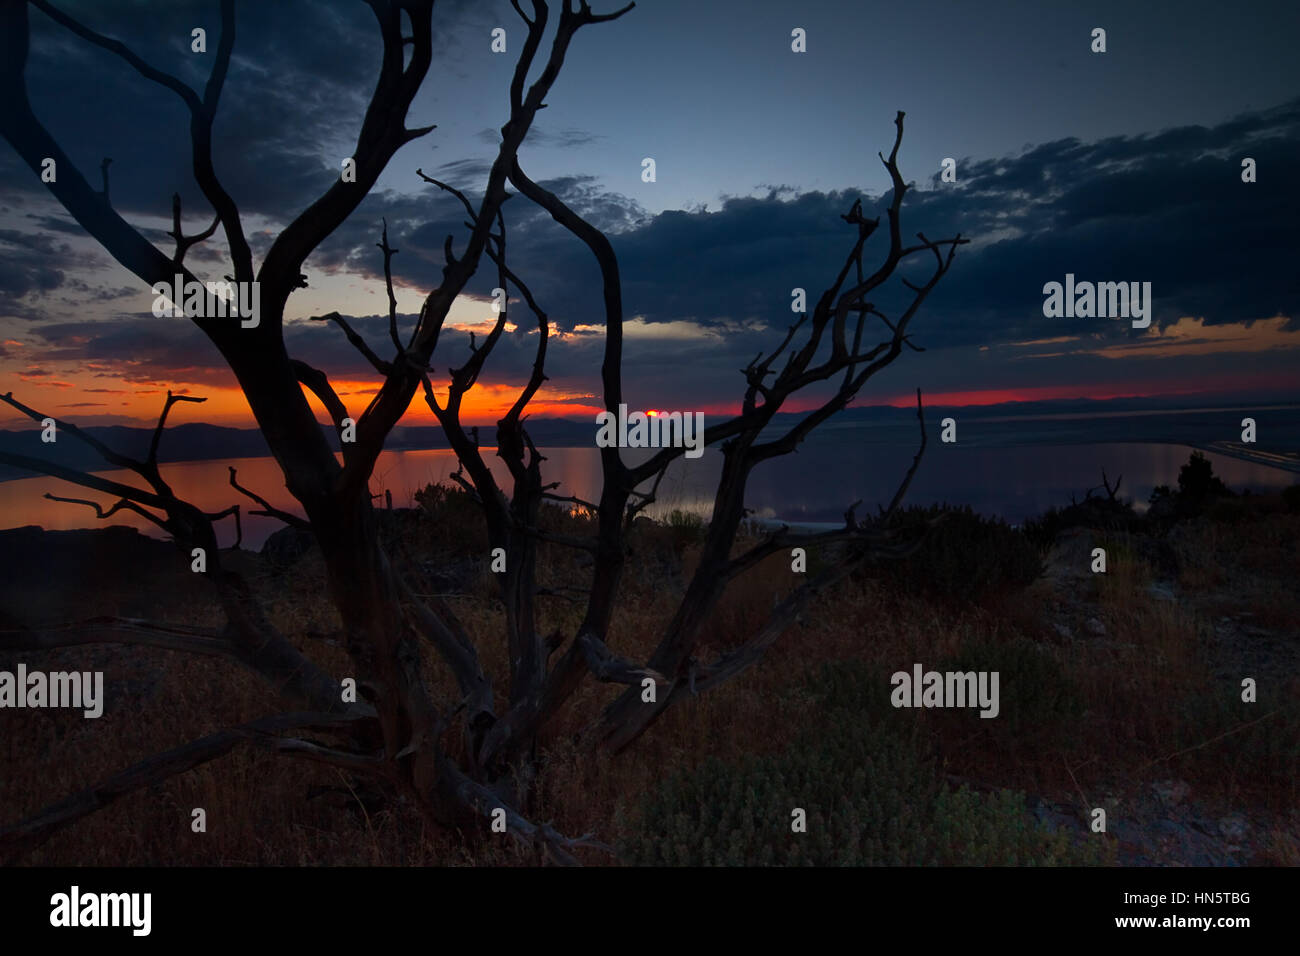 Branch in front of sunset at Stansbury Island, Tooele, Utah, USA Stock Photo